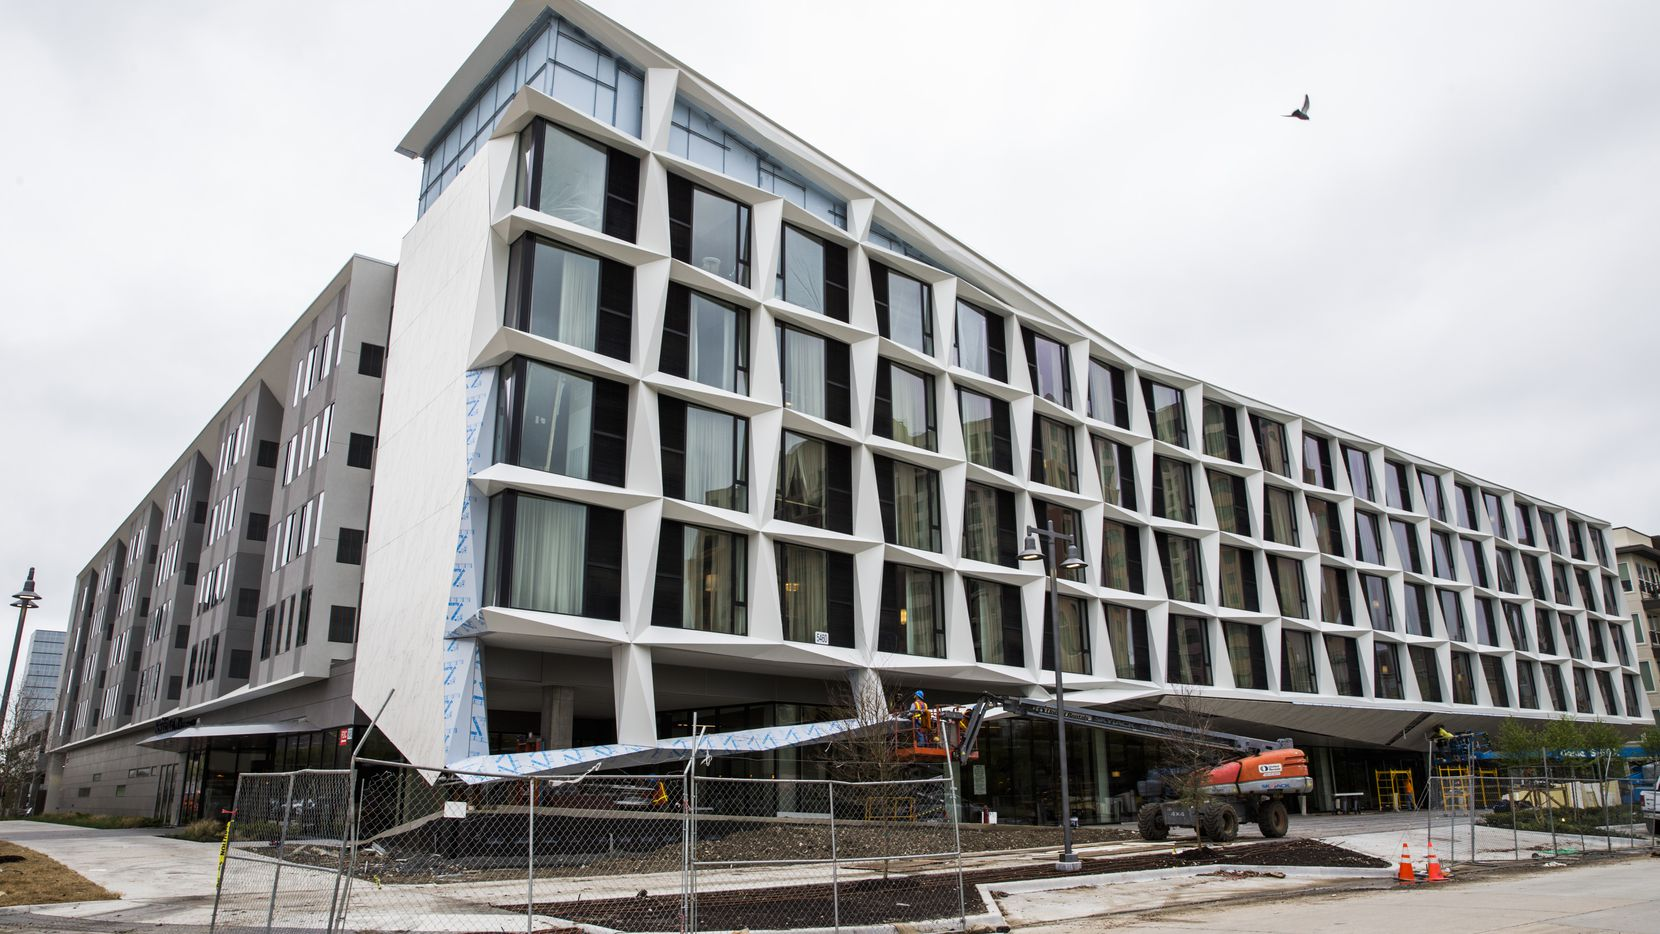 Construction workers put finishing touches on the exterior of the AC Hotel, which is under construction near the Galleria, and was designed by 5G Studio Collaborative.